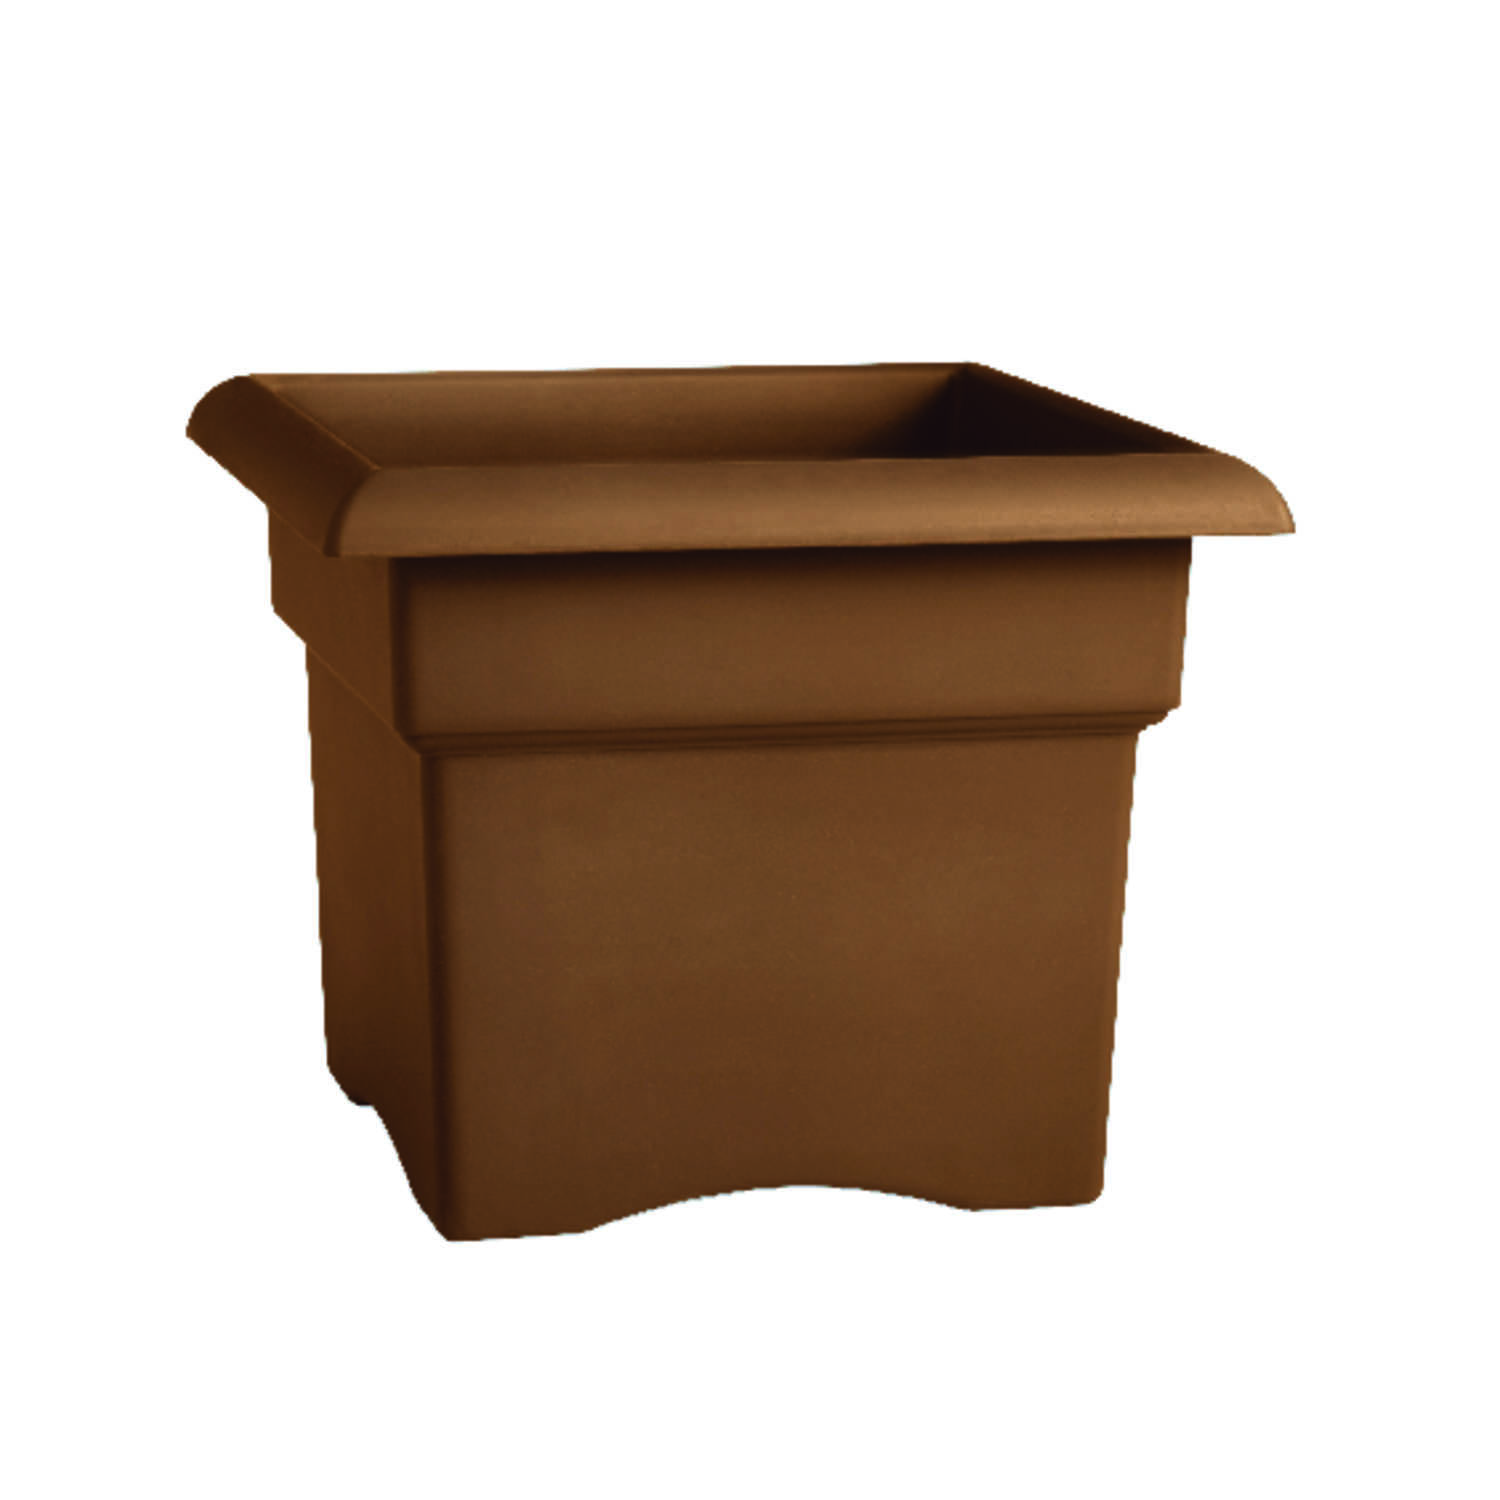 Bloem  11 in. H x 14 in. W Chocolate  Resin  Veranda  Planter